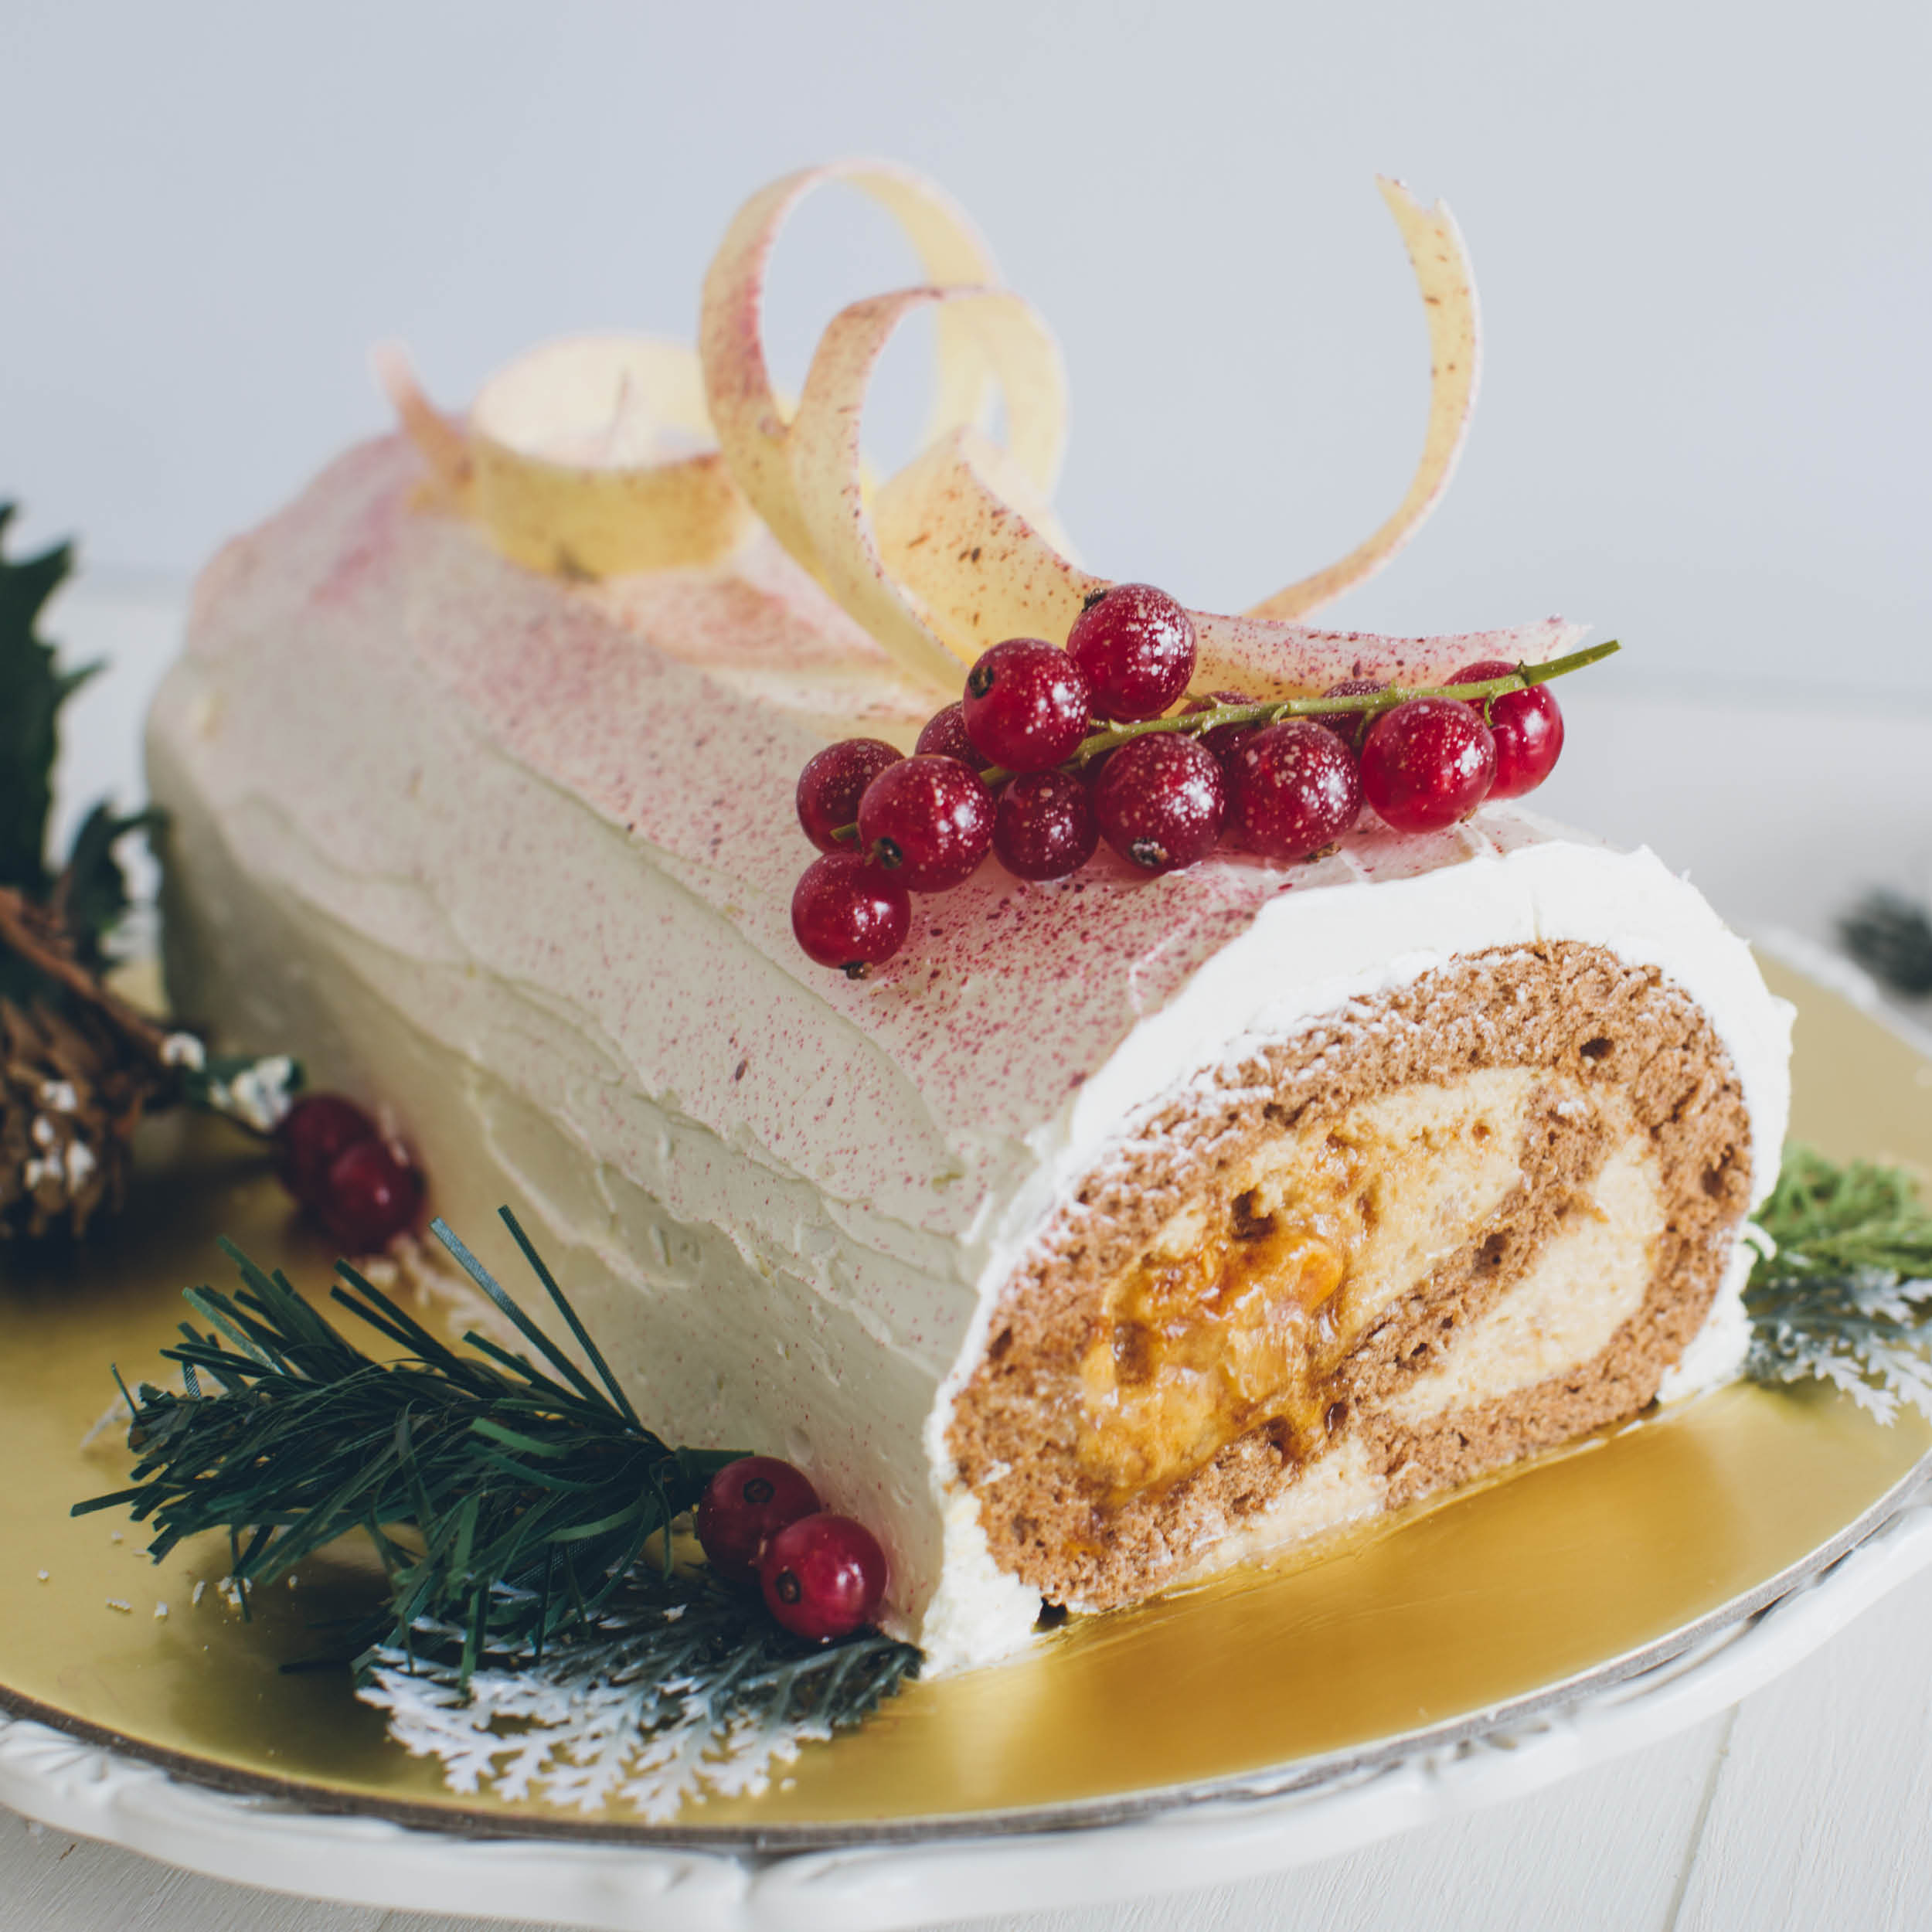 How To Make Gingerbread Cake From Scratch